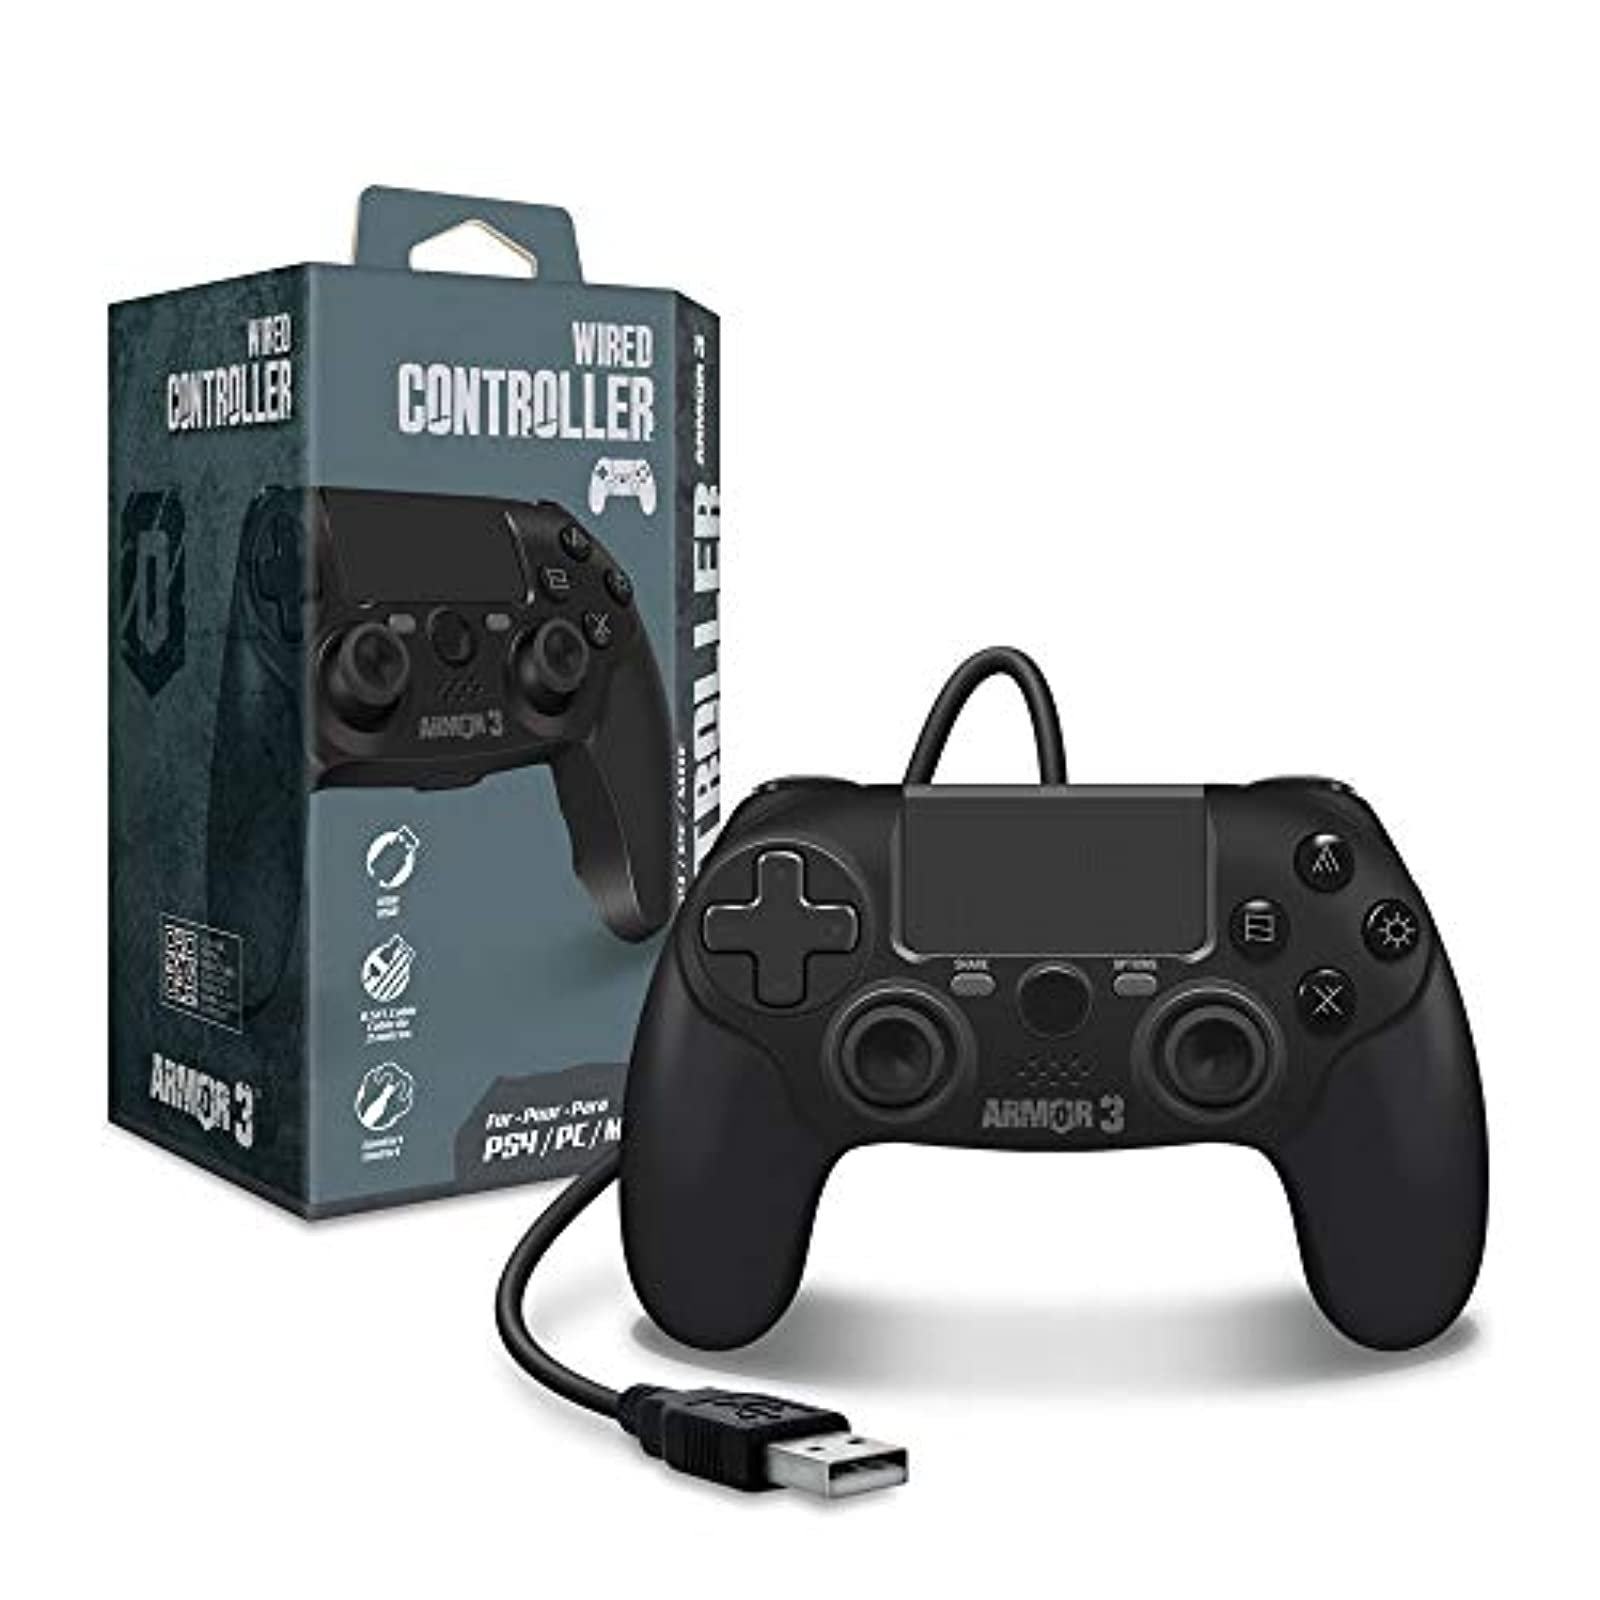 Armor 3 Wired Game Controller For PS4 PC MAC For PlayStation 4